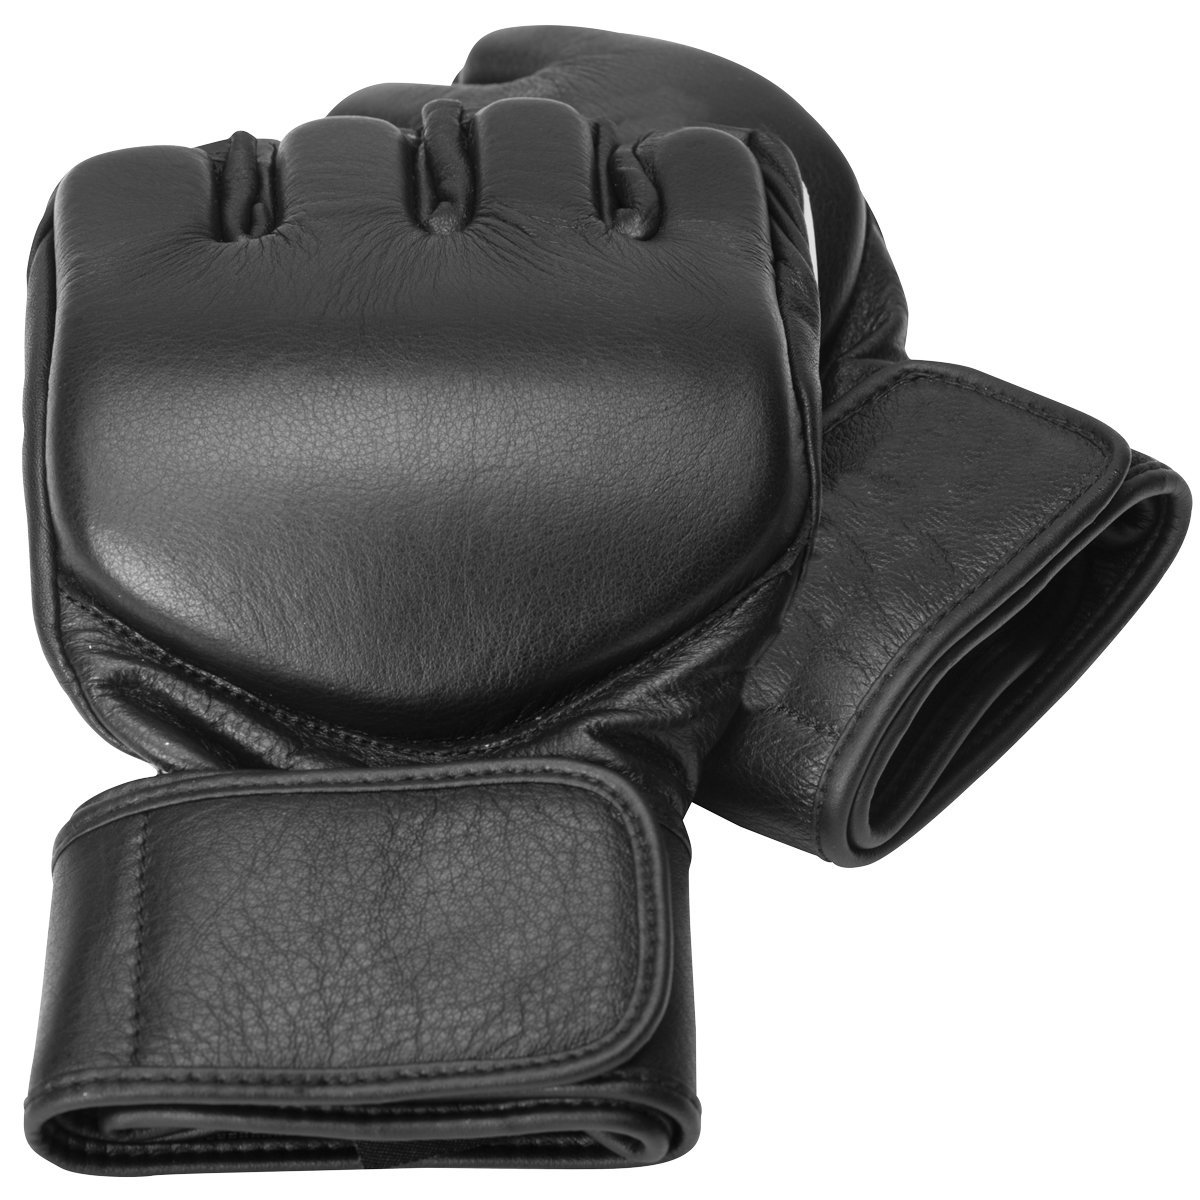 View larger image of Blank Competition Glove - Large